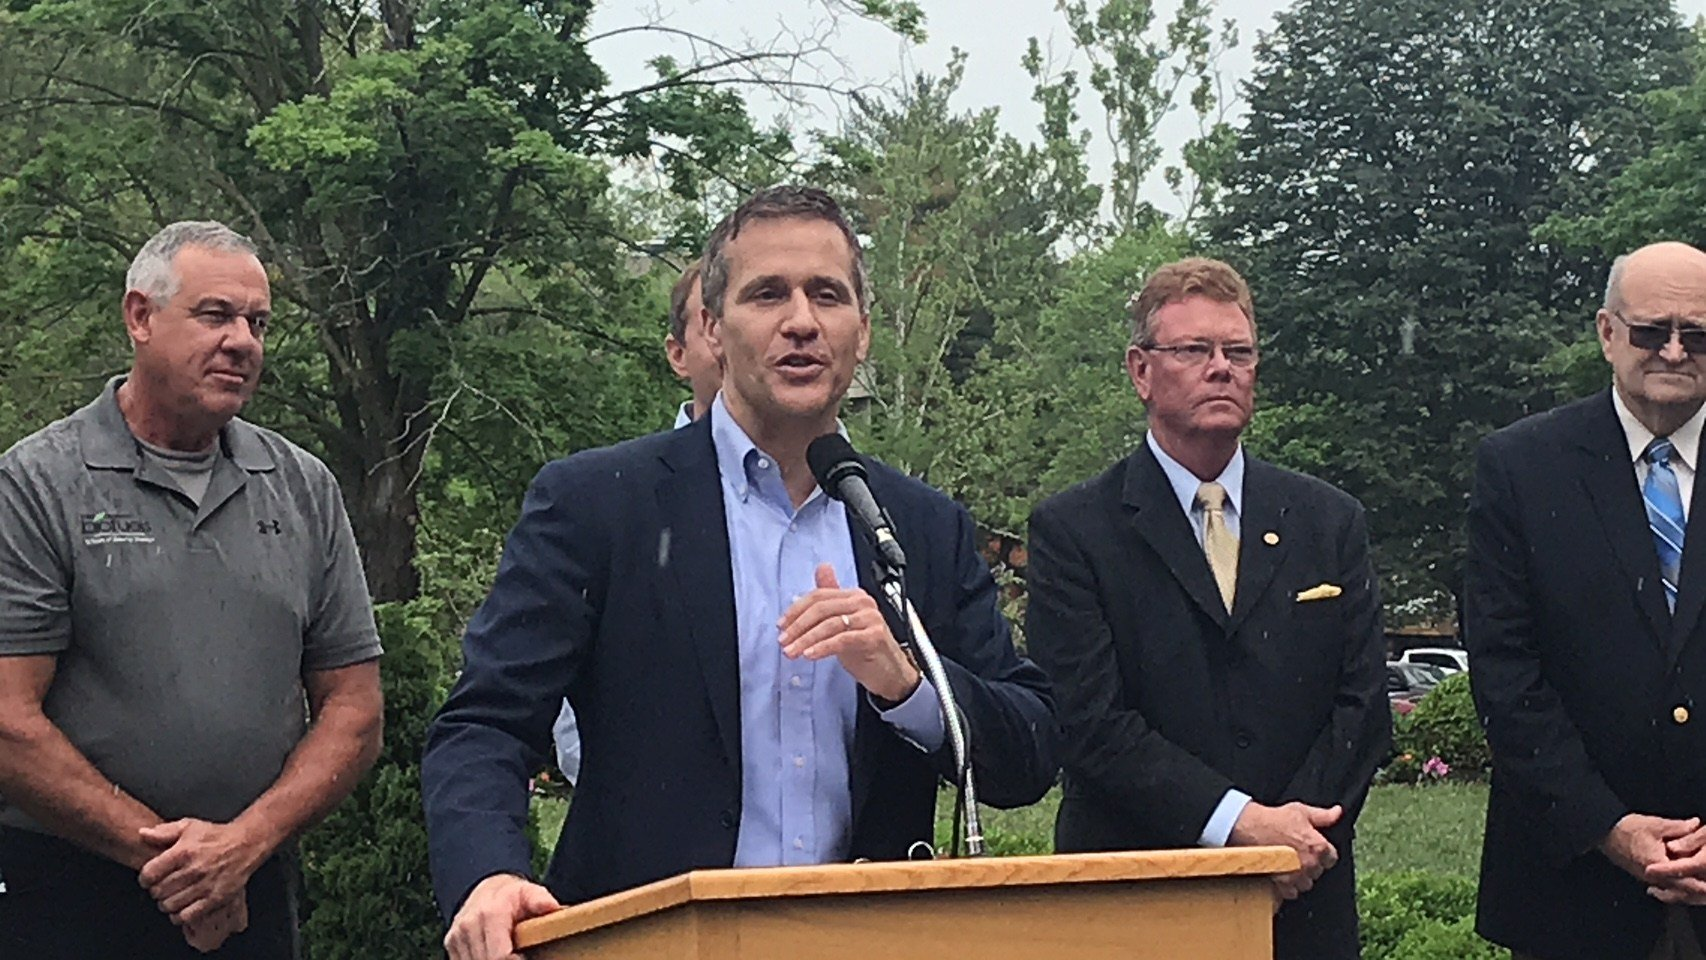 Governor Eric Greitens makes a public appearance in the Carnahan Memorial Garden next to the governor's mansion to talk about funding for farmers involved in the biodiesel industry.